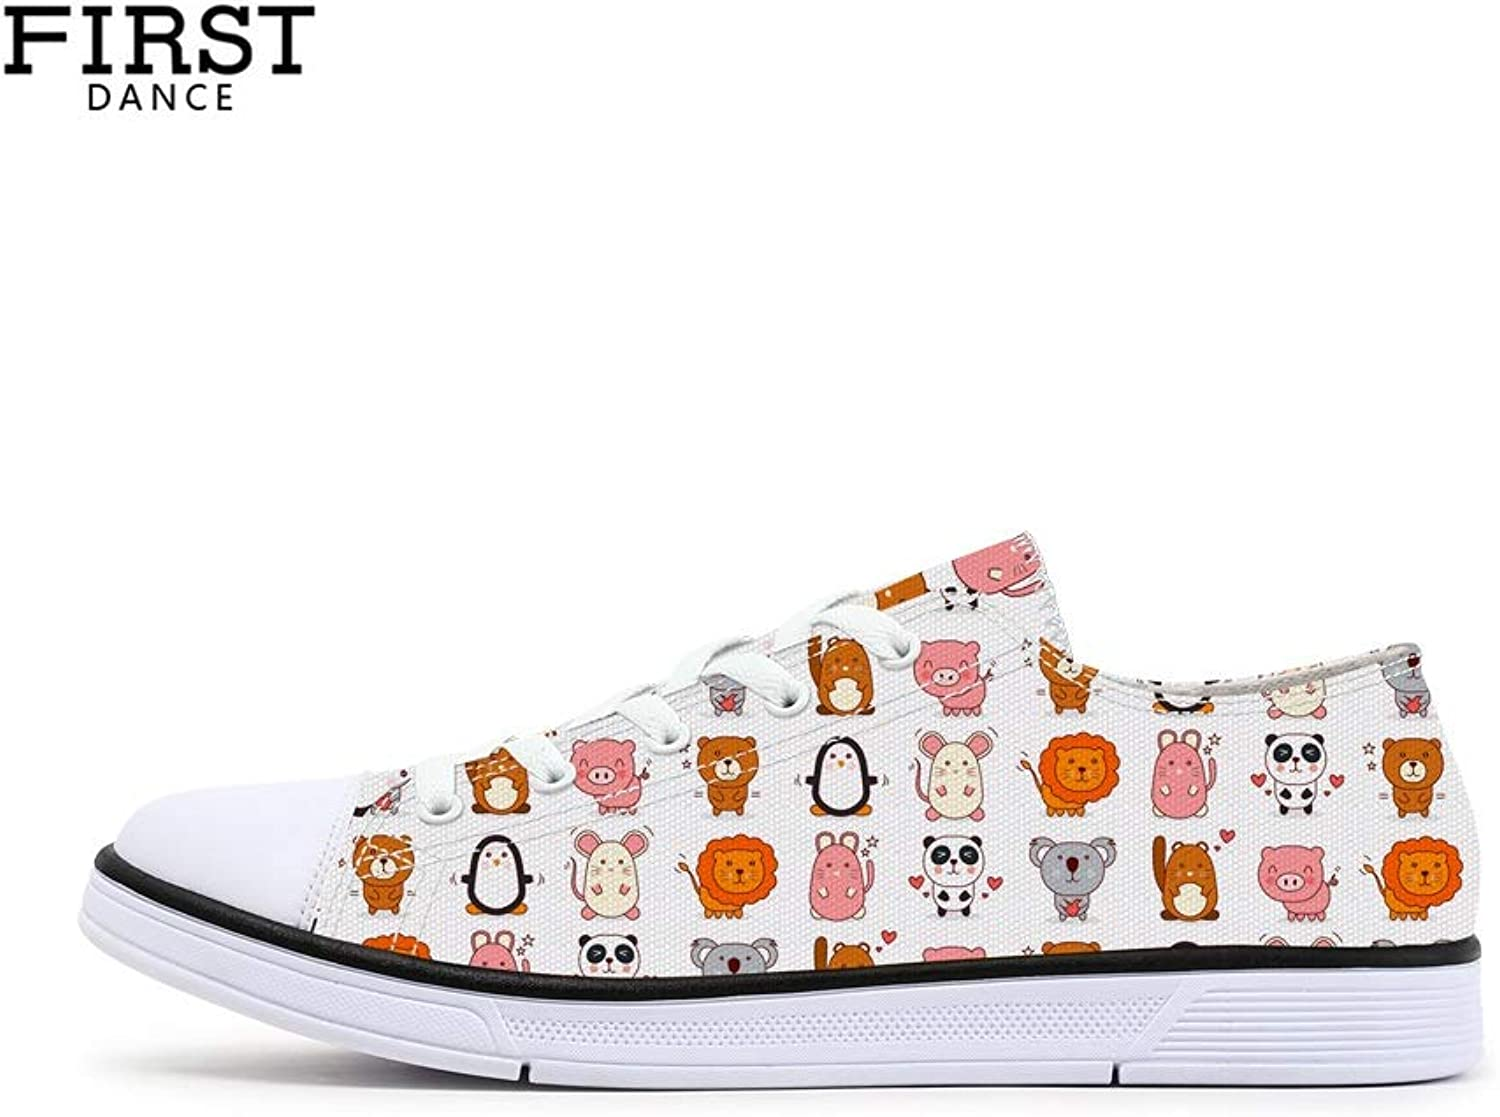 FIRST DANCE shoes for Women Cat shoes Pug Dog shoes Canvas Casual shoes Animal Printed Sneakers Low Top Cute shoes for Ladies